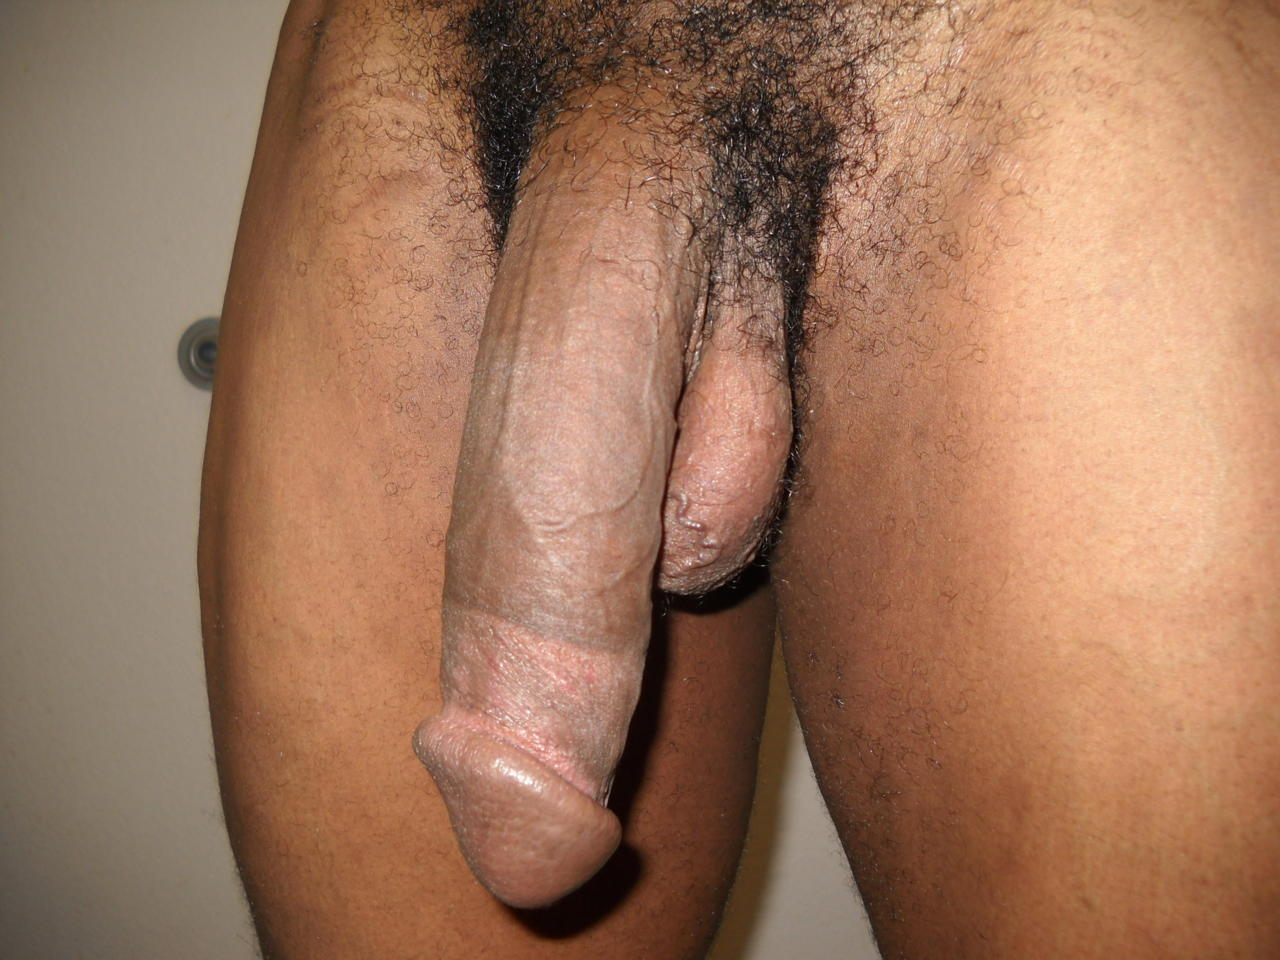 www.CONGOsex long dick penis,com.